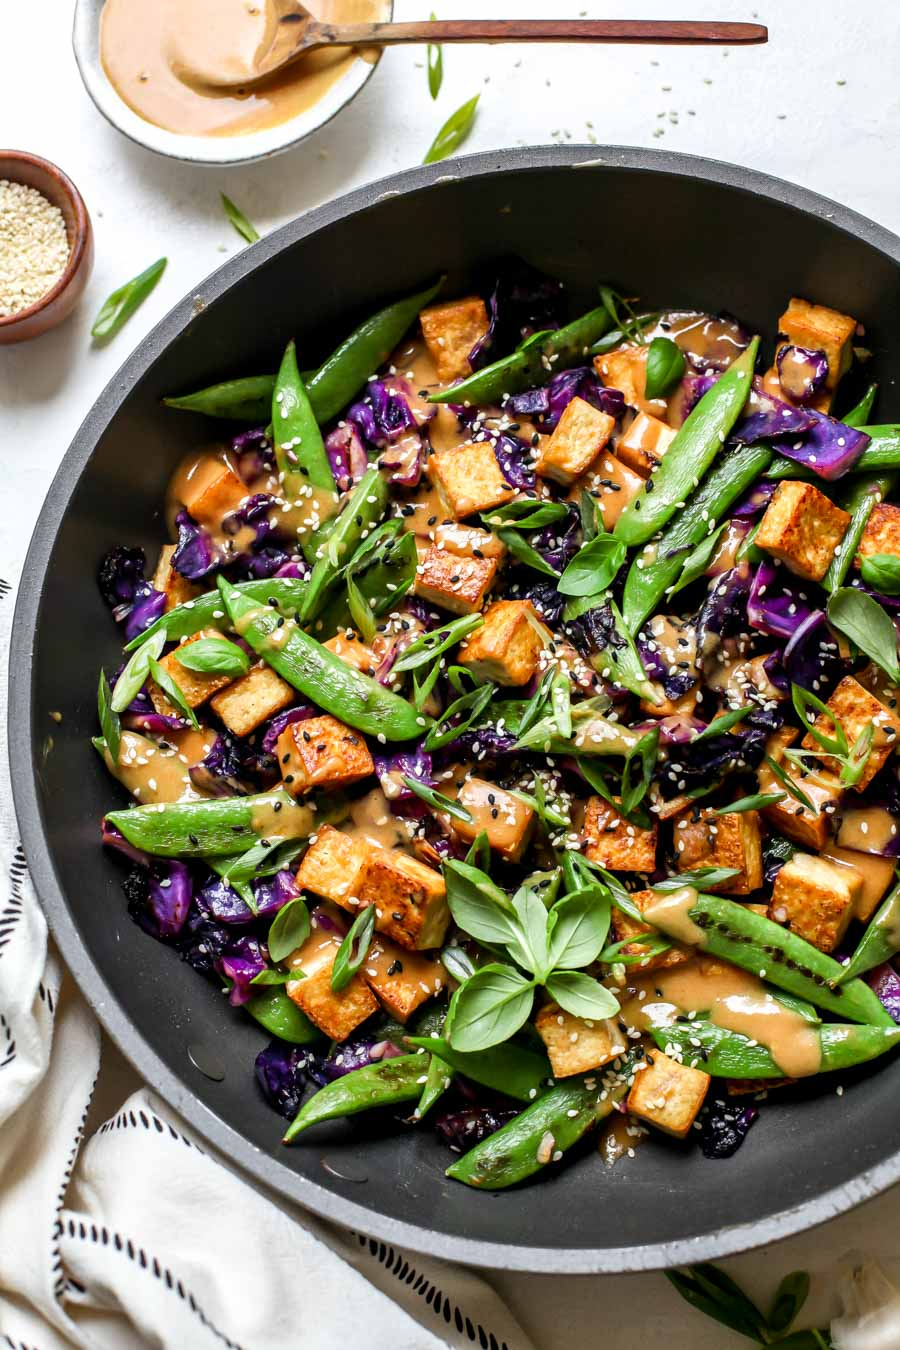 Veg Tofu Stir Fry Recipe Image Of Food Recipe